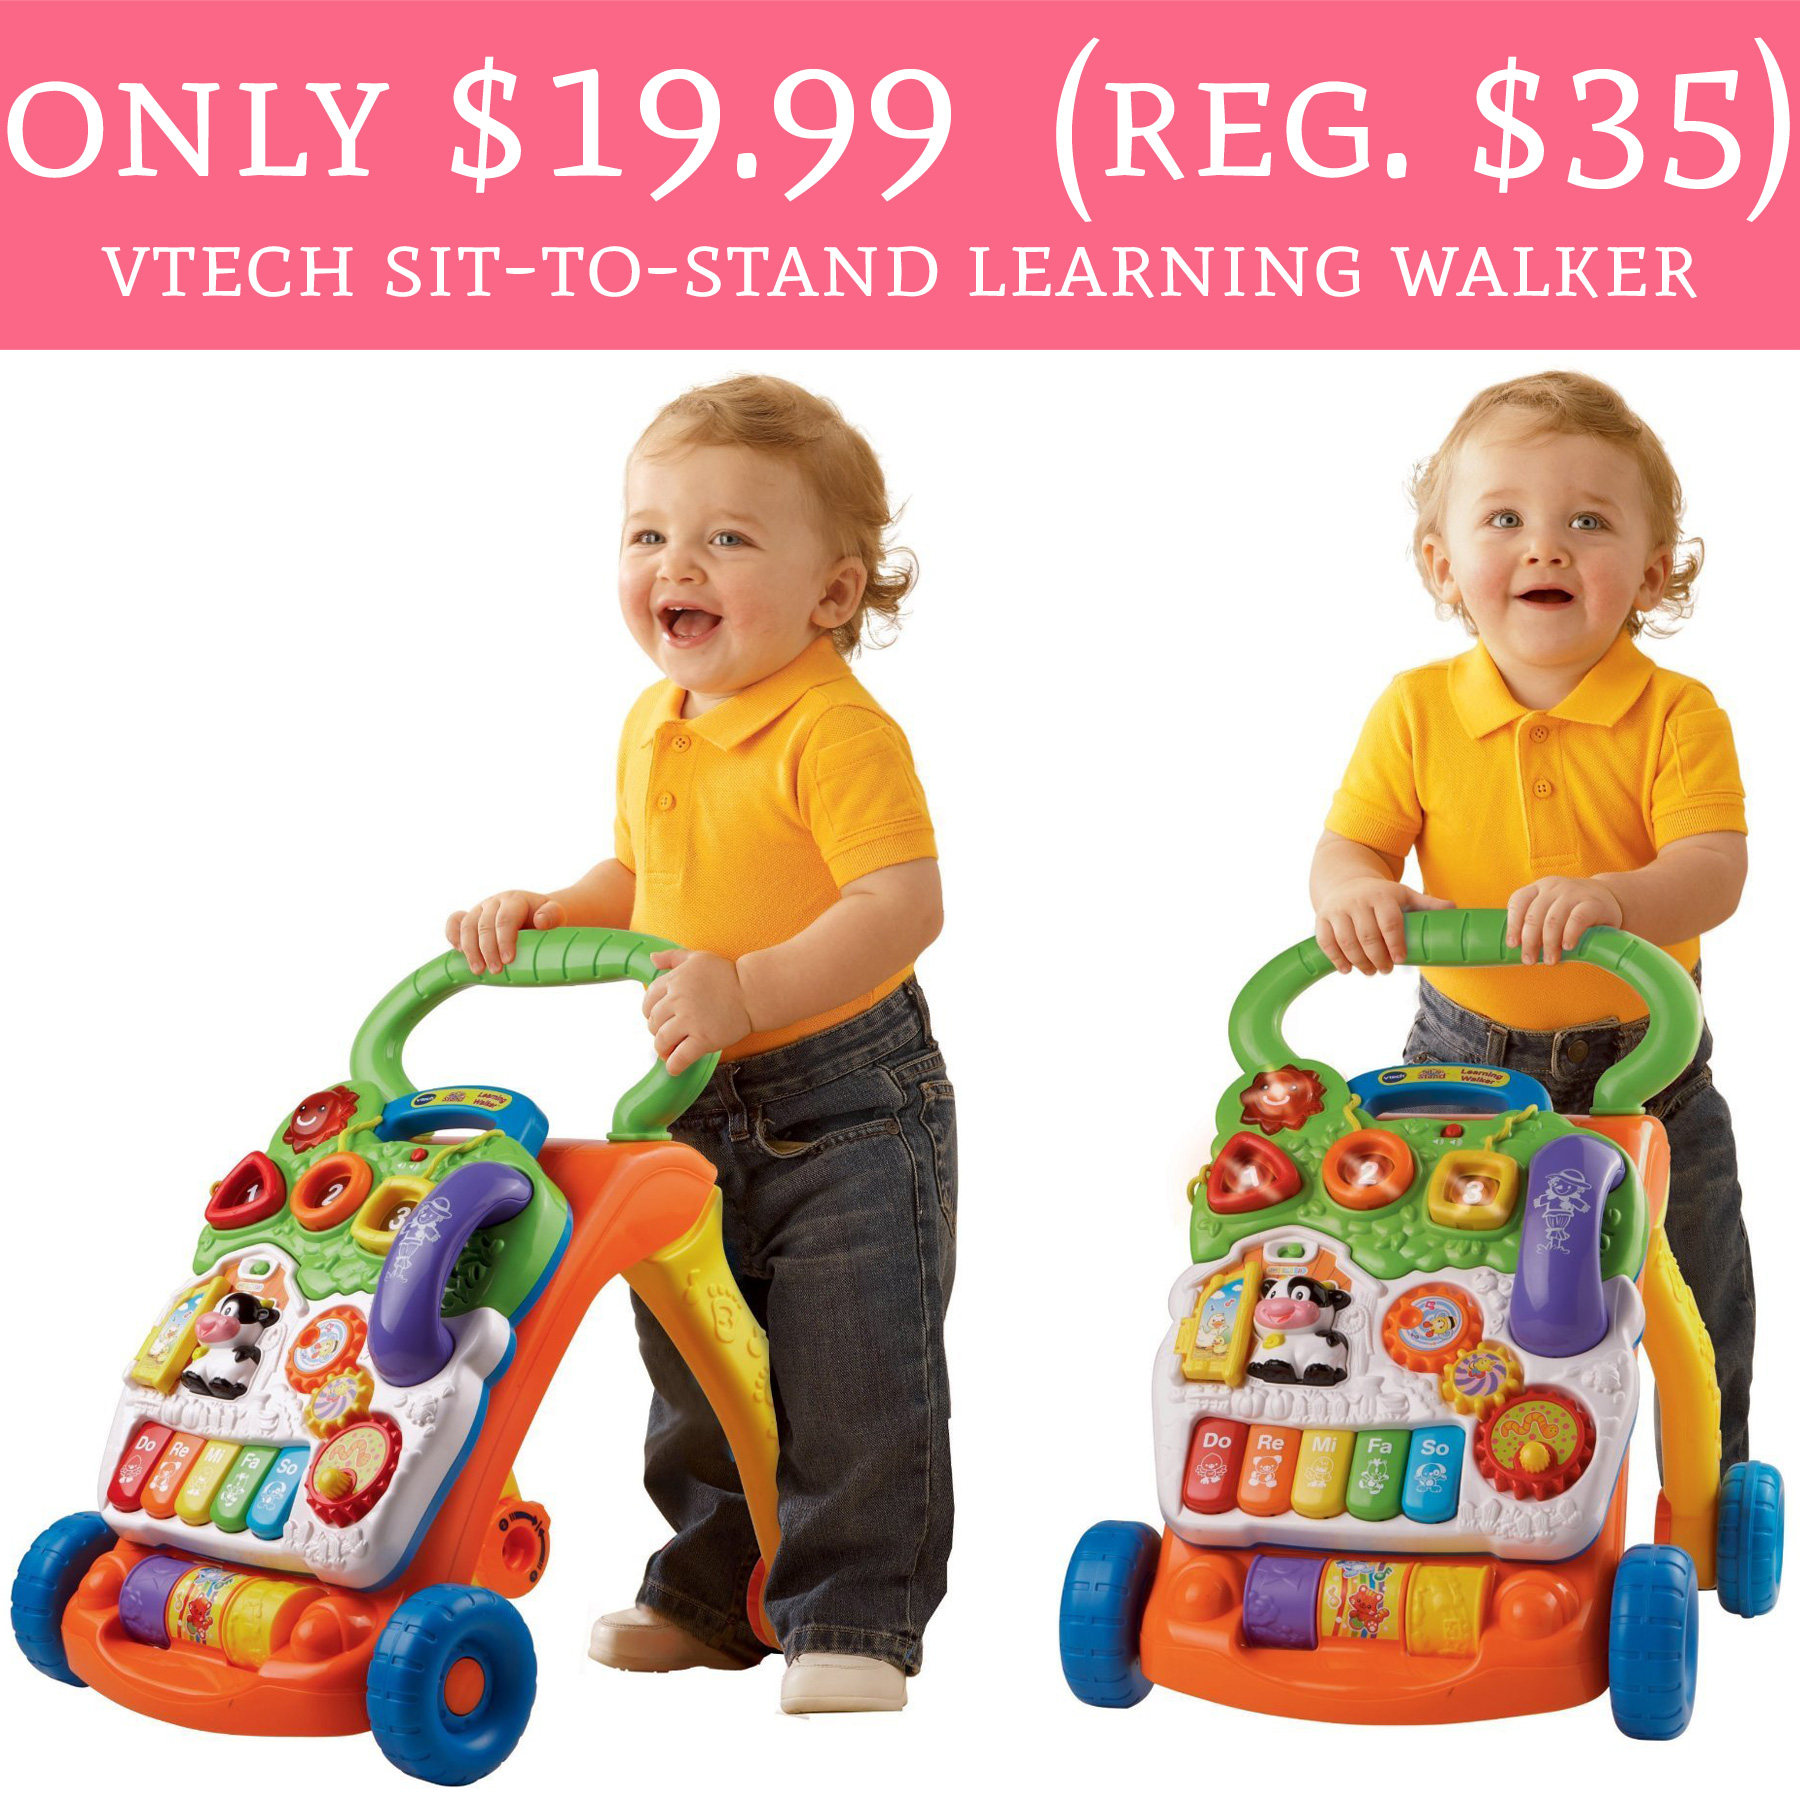 ly $19 99 Regular $35 VTech Sit To Stand Learning Walker